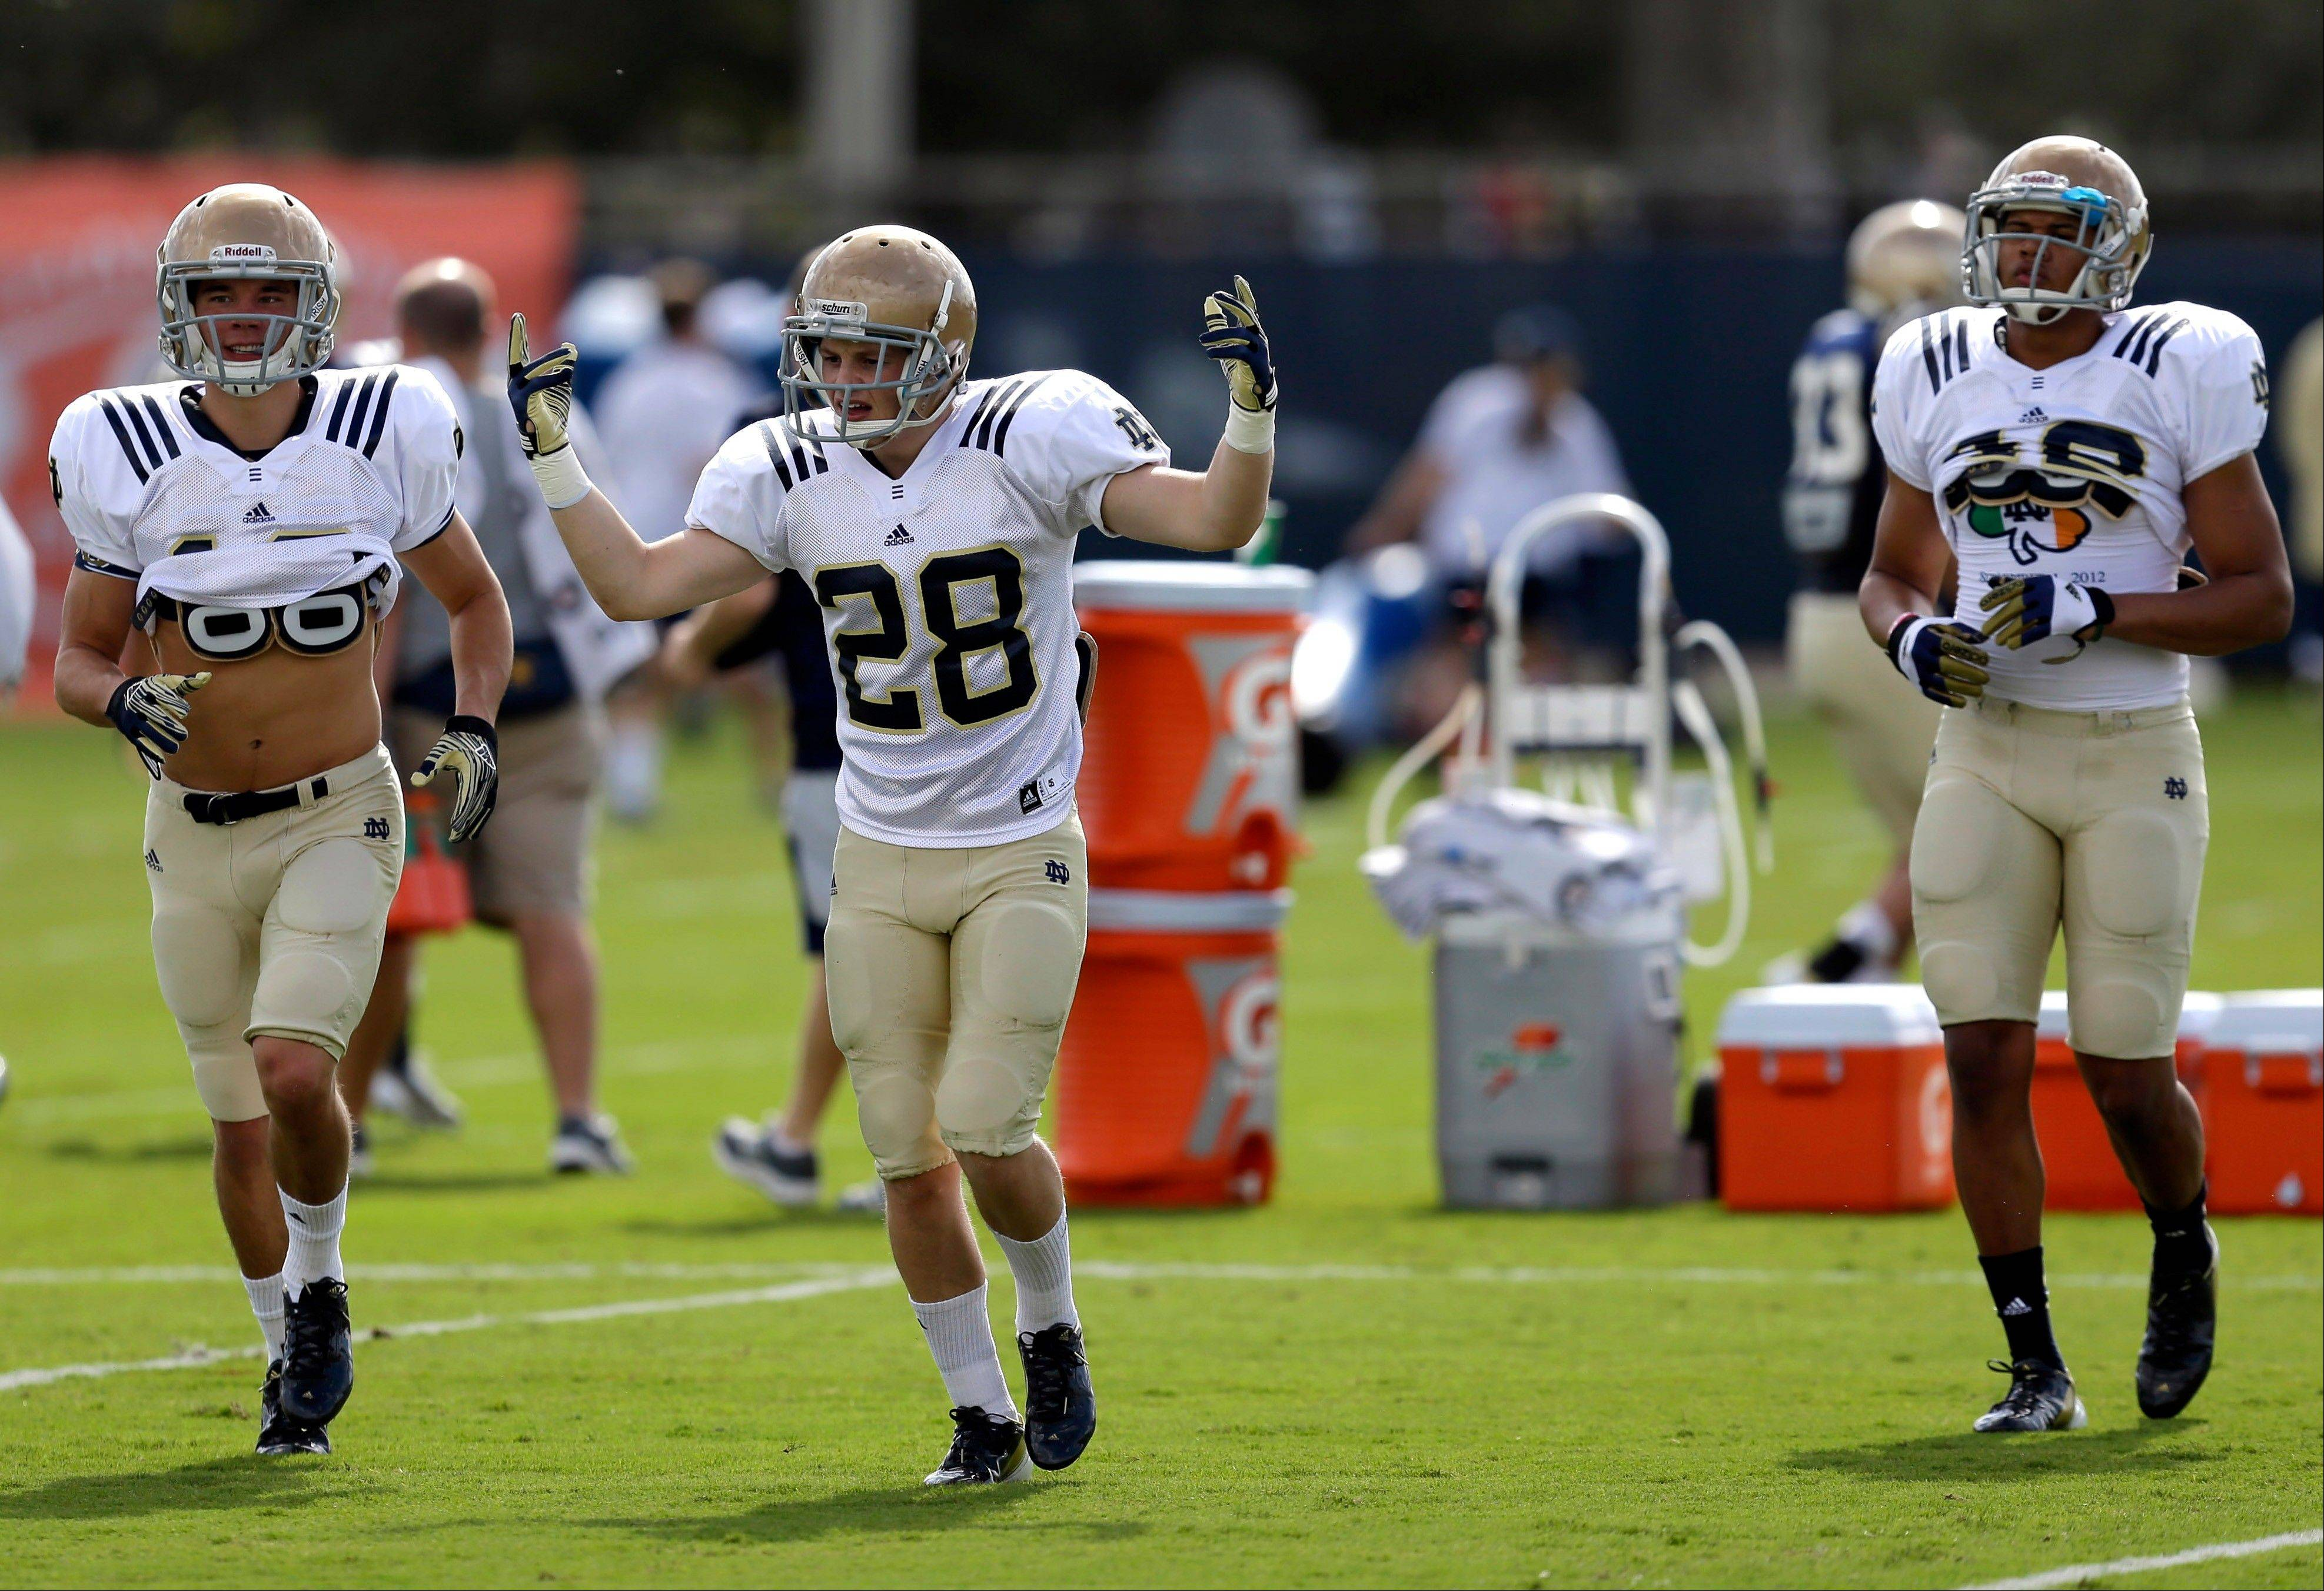 Notre Dame safety Austin Collinsworth (28) gestures as he and teammates prepare to run more drills Thursday during practice at the Miami Dolphins' training facility in Davie, Fla. Notre Dame is scheduled to play Alabama on Mondayin the BCS national championship.